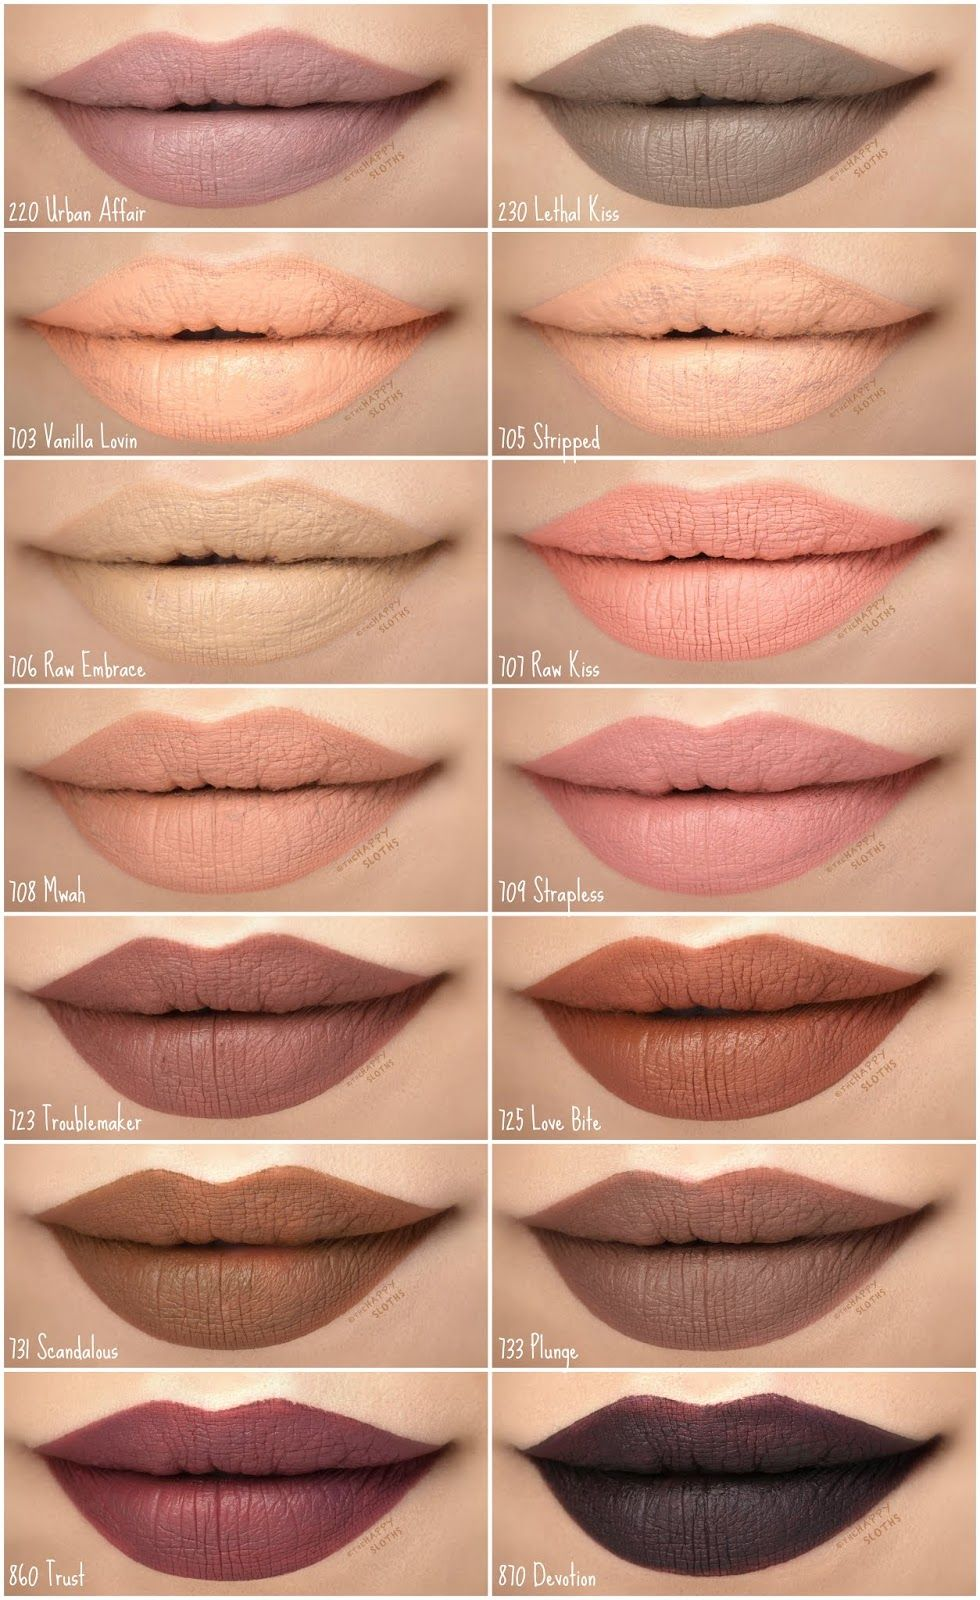 Rimmel London Hair And Nails Lip Colors Rimmel Makeup Matte Lips